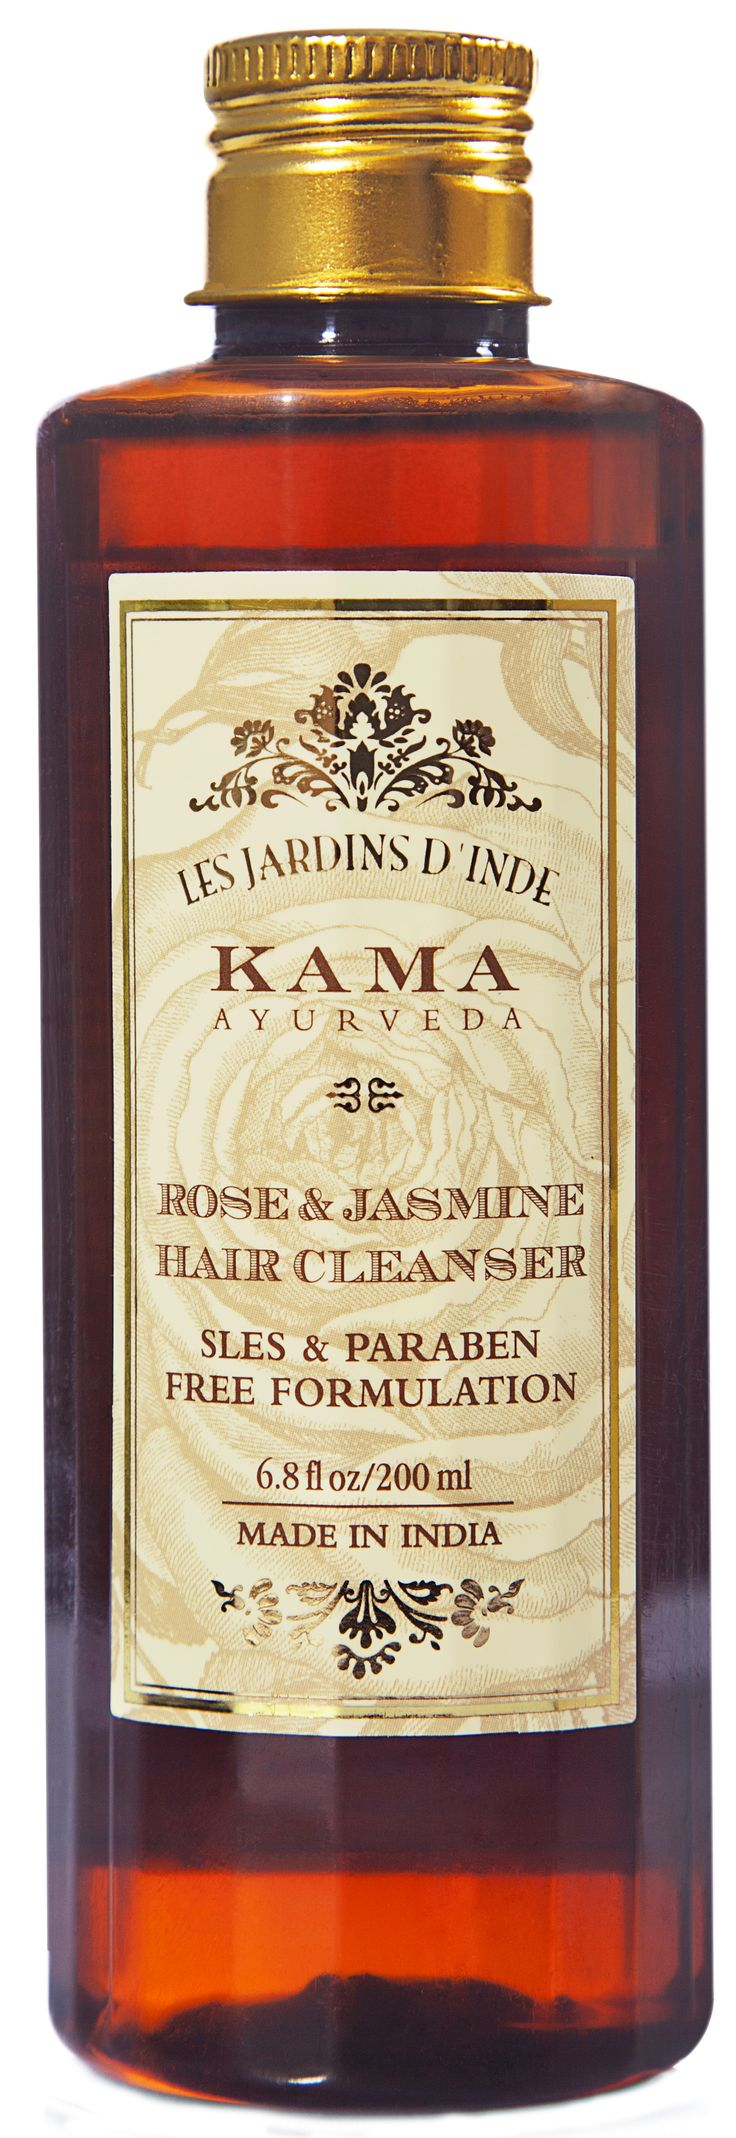 A restoring and balancing cleanser that improves hair strength to mitigate damage especially that caused by coloring, heat styling and chemical treatments.